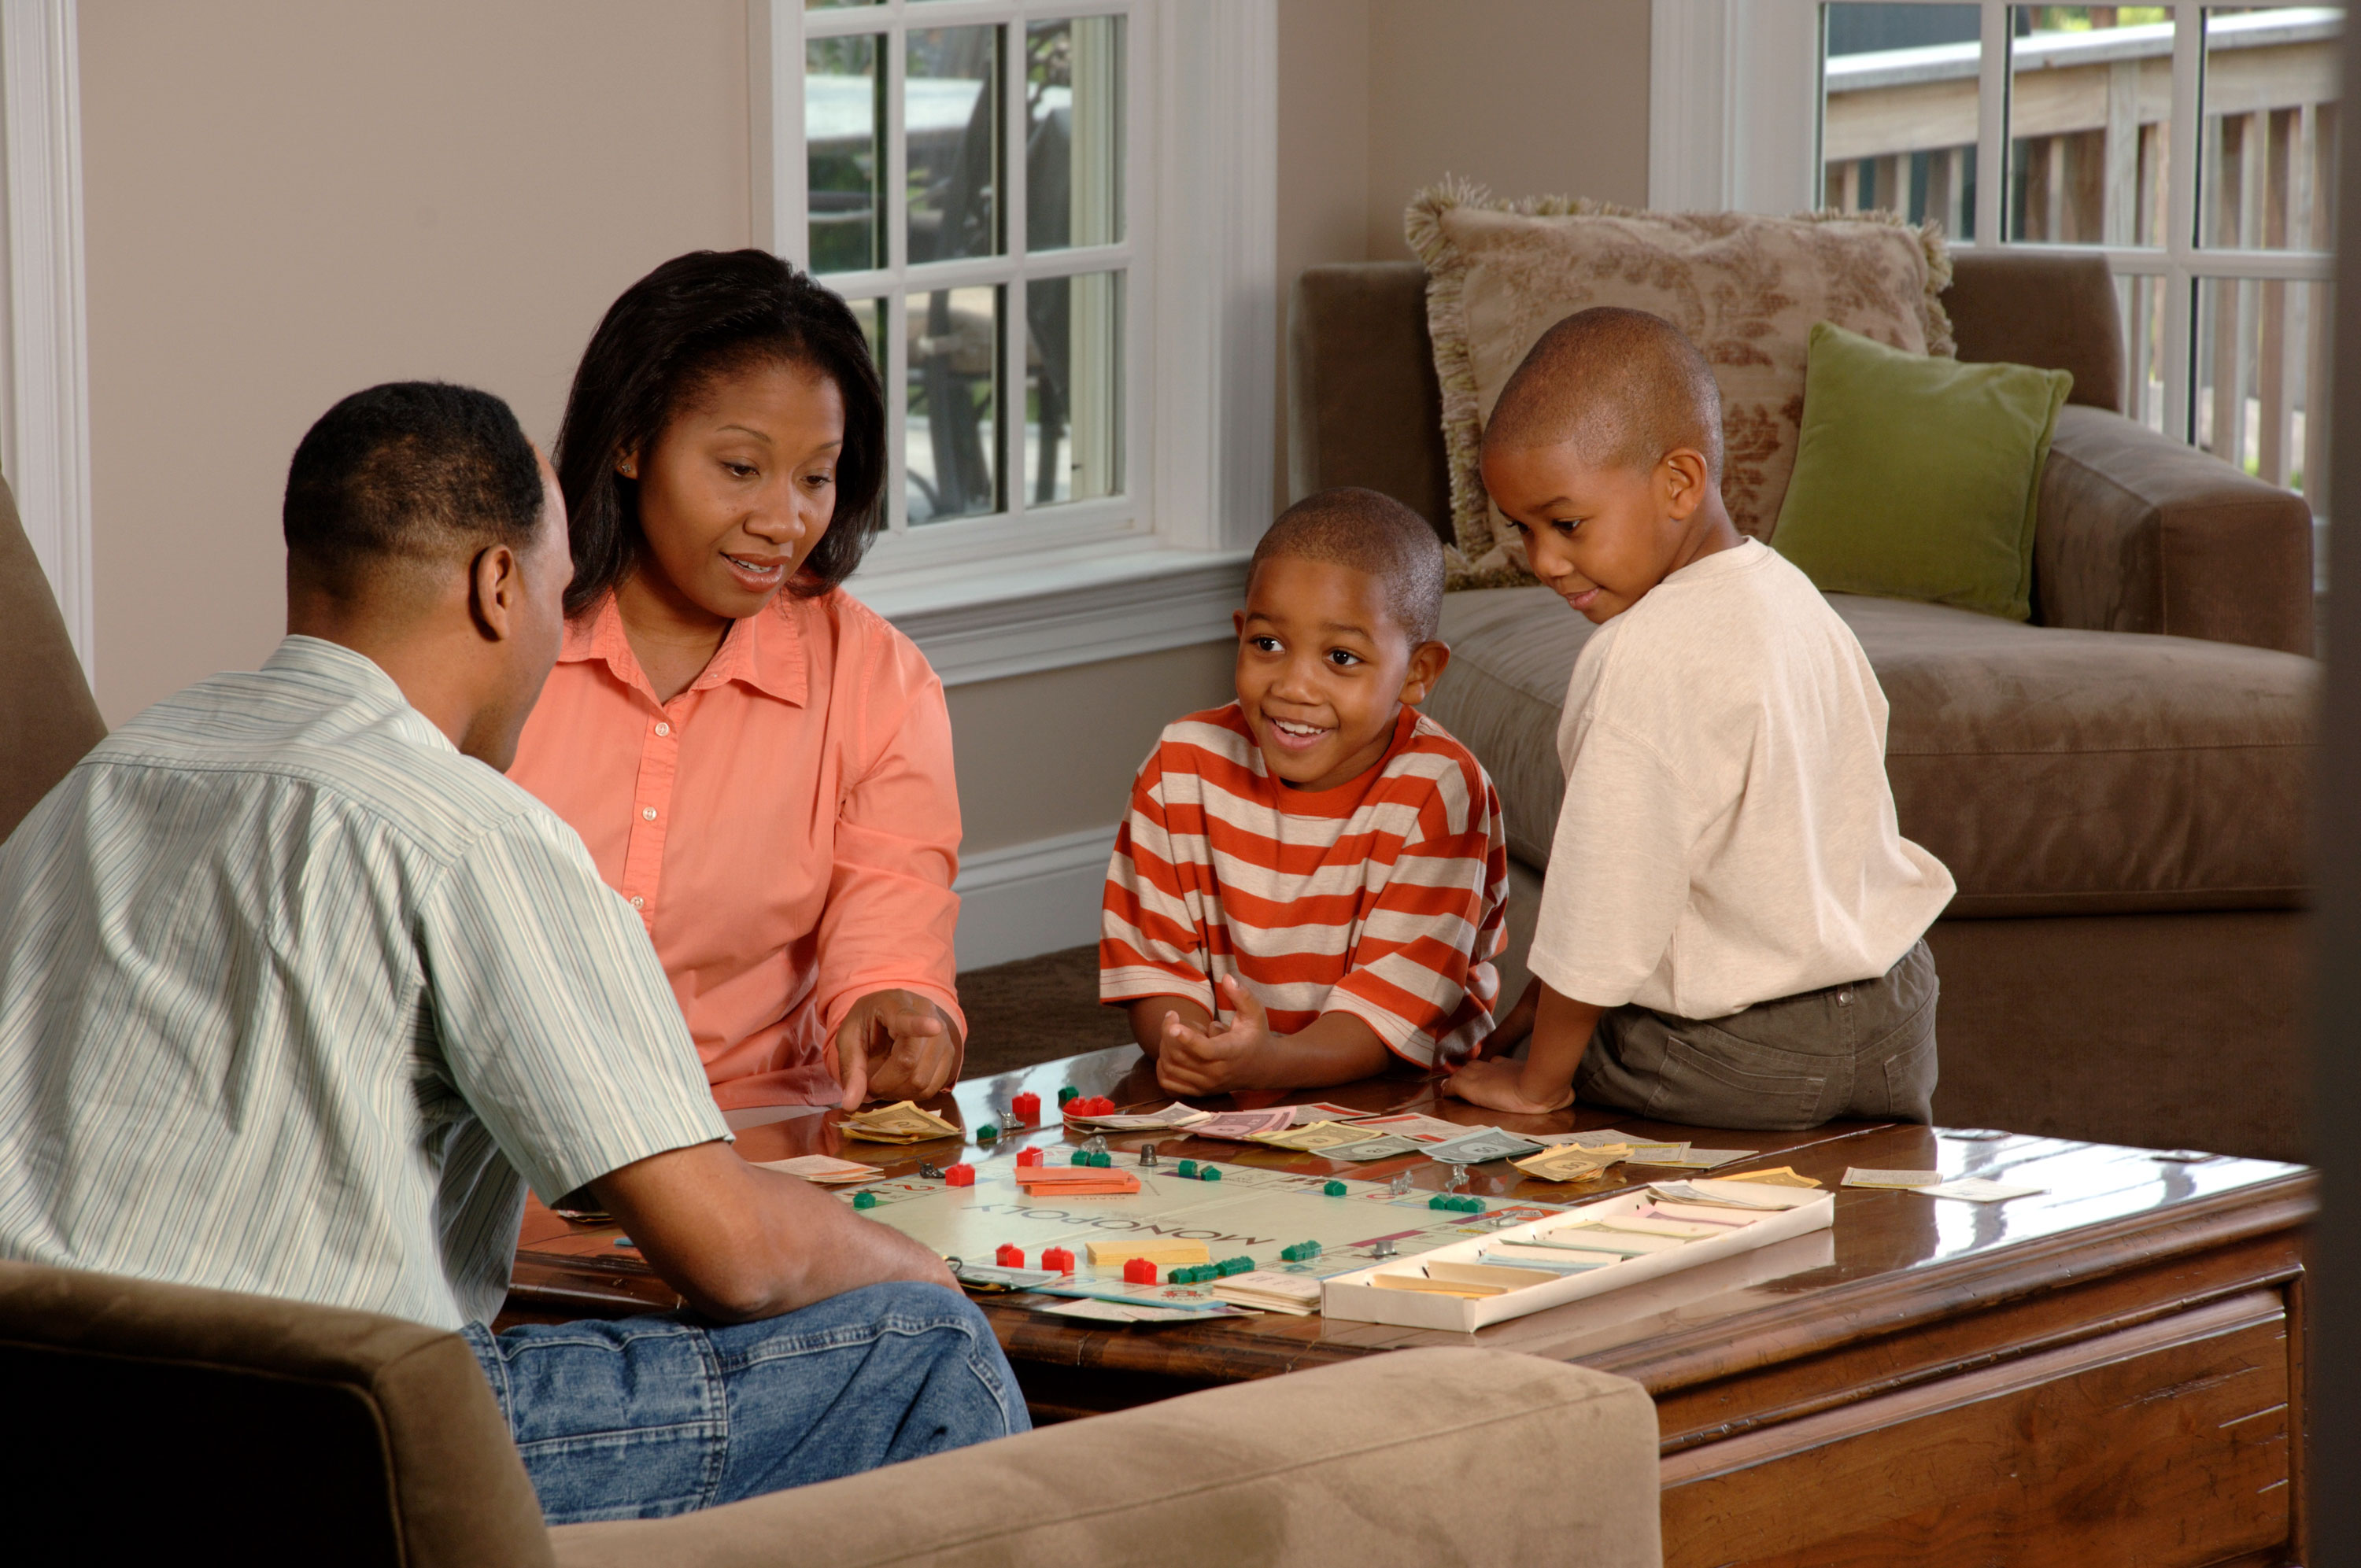 The Best Family Board Games on Amazon, According to Hyperenthusiastic Reviewers